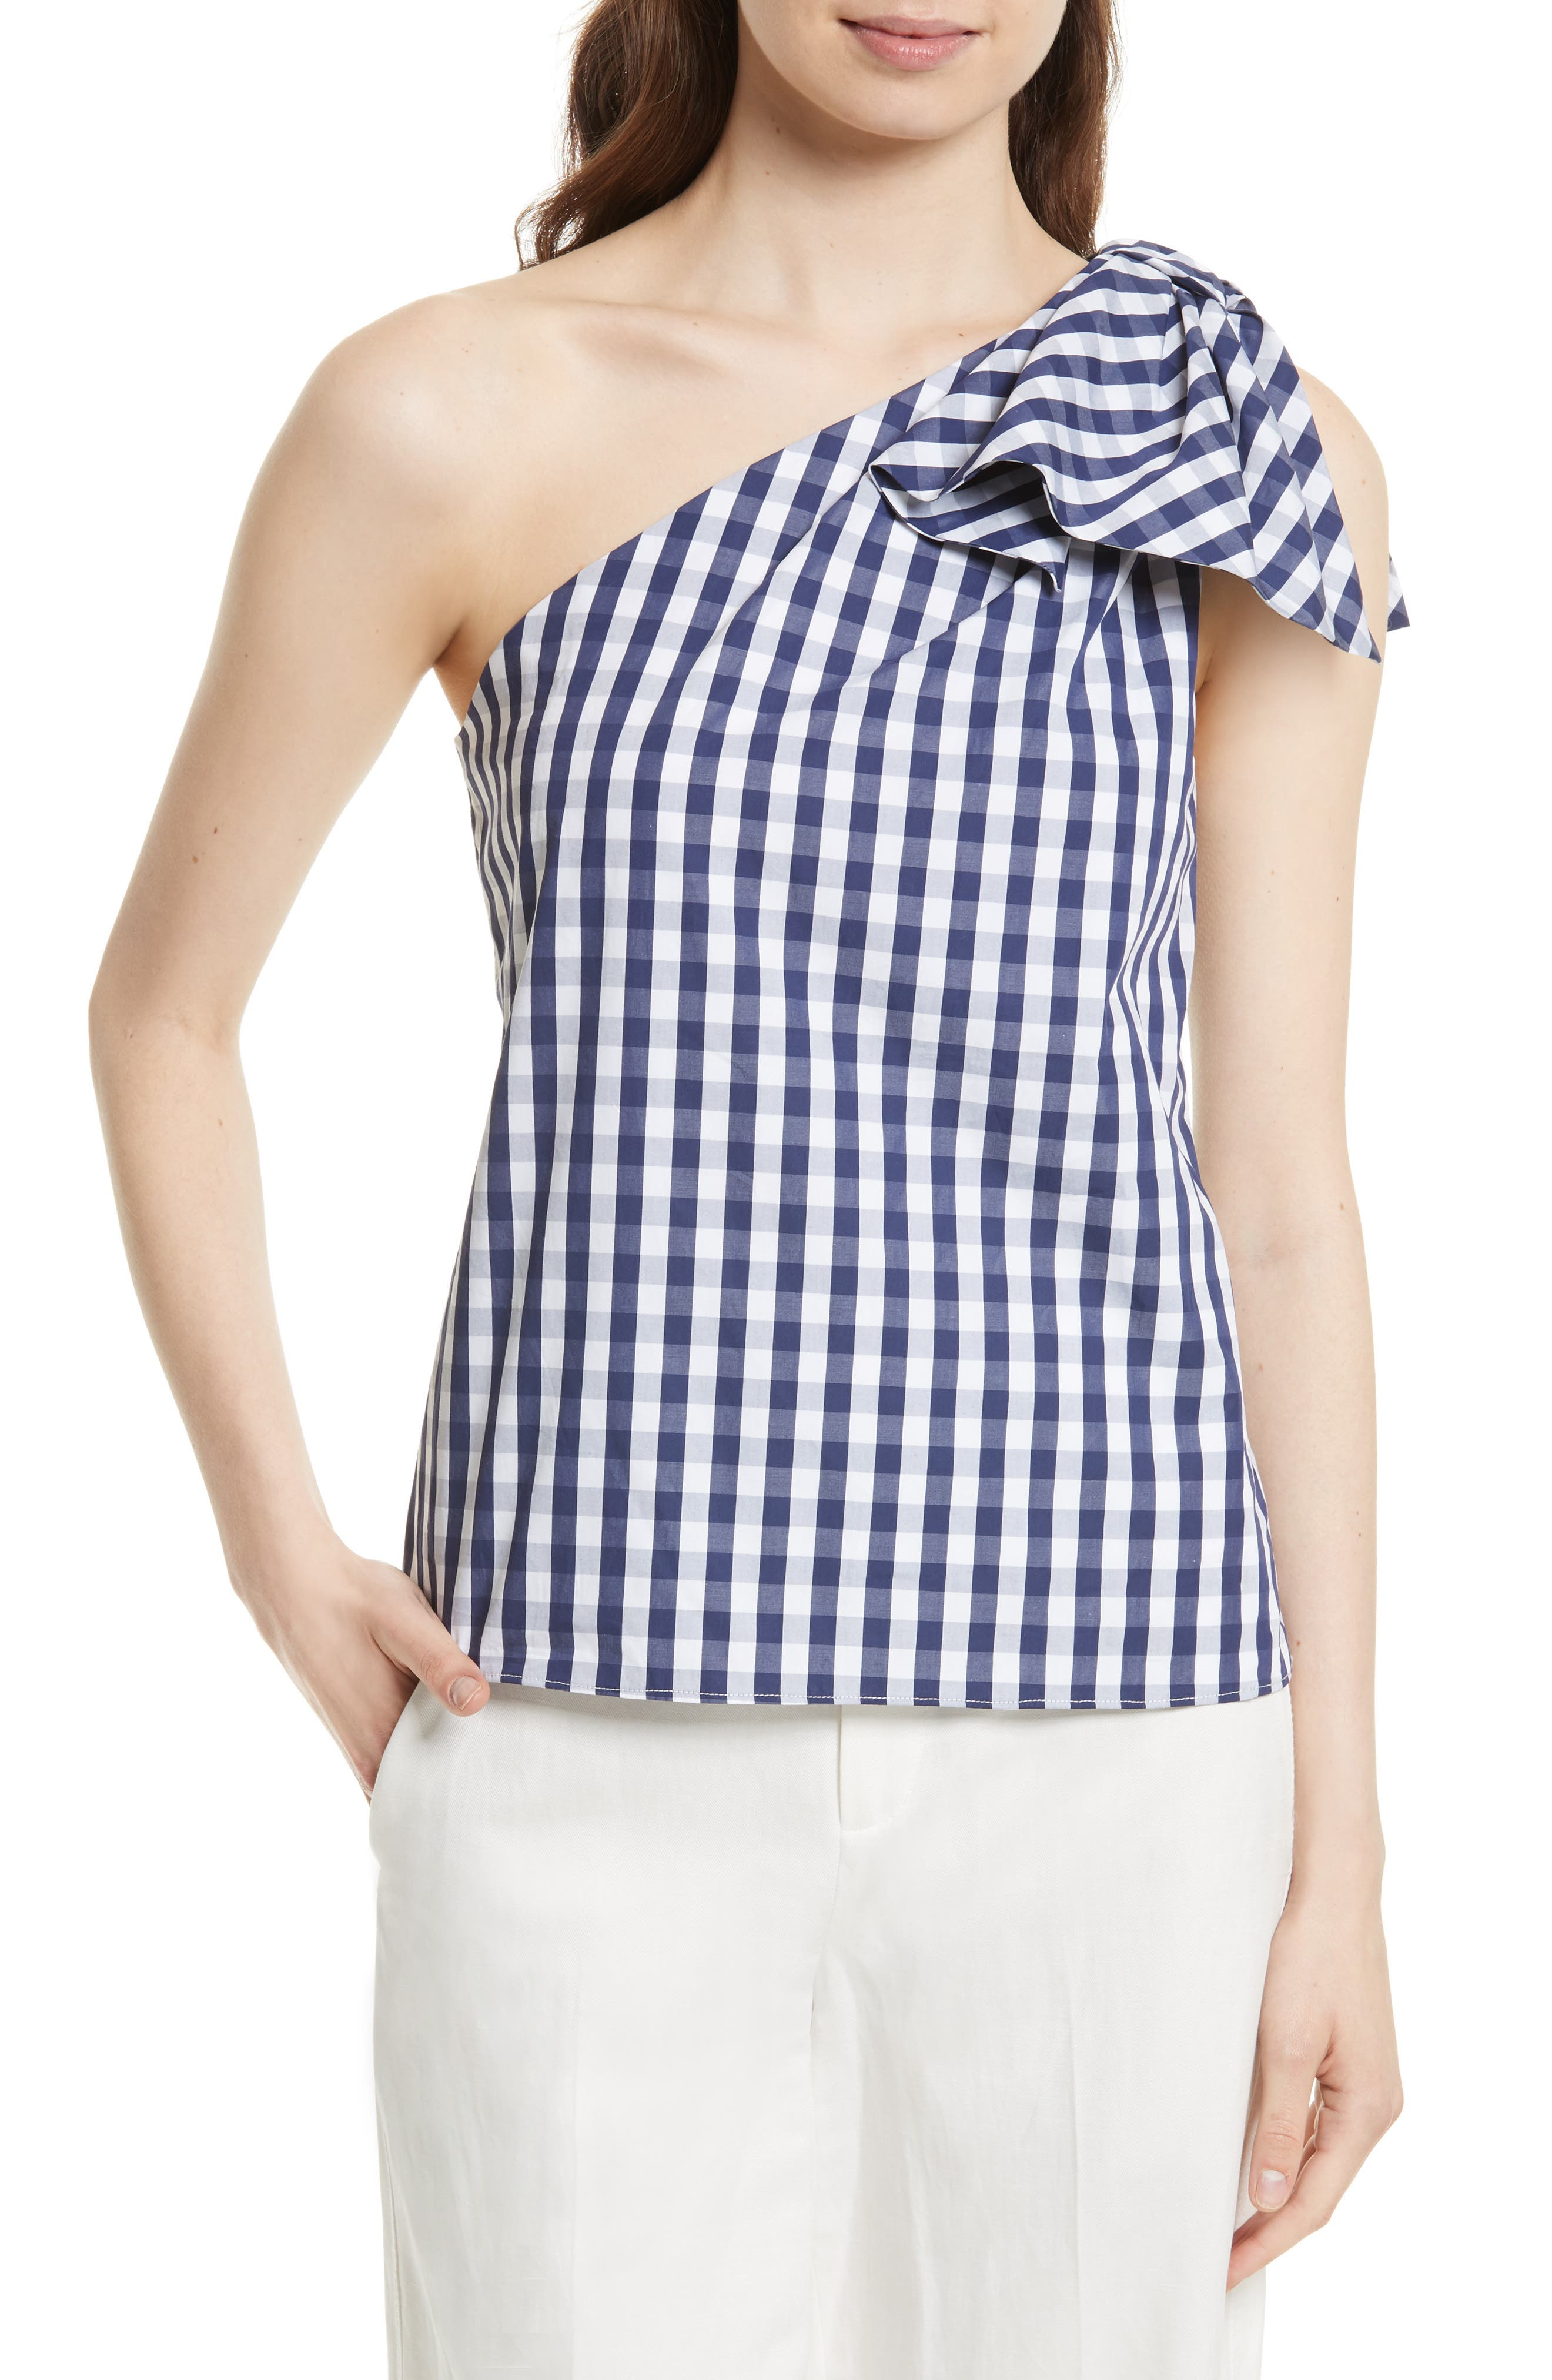 MILLY, Cindy One Shoulder Gingham Top, Main thumbnail 1, color, 410